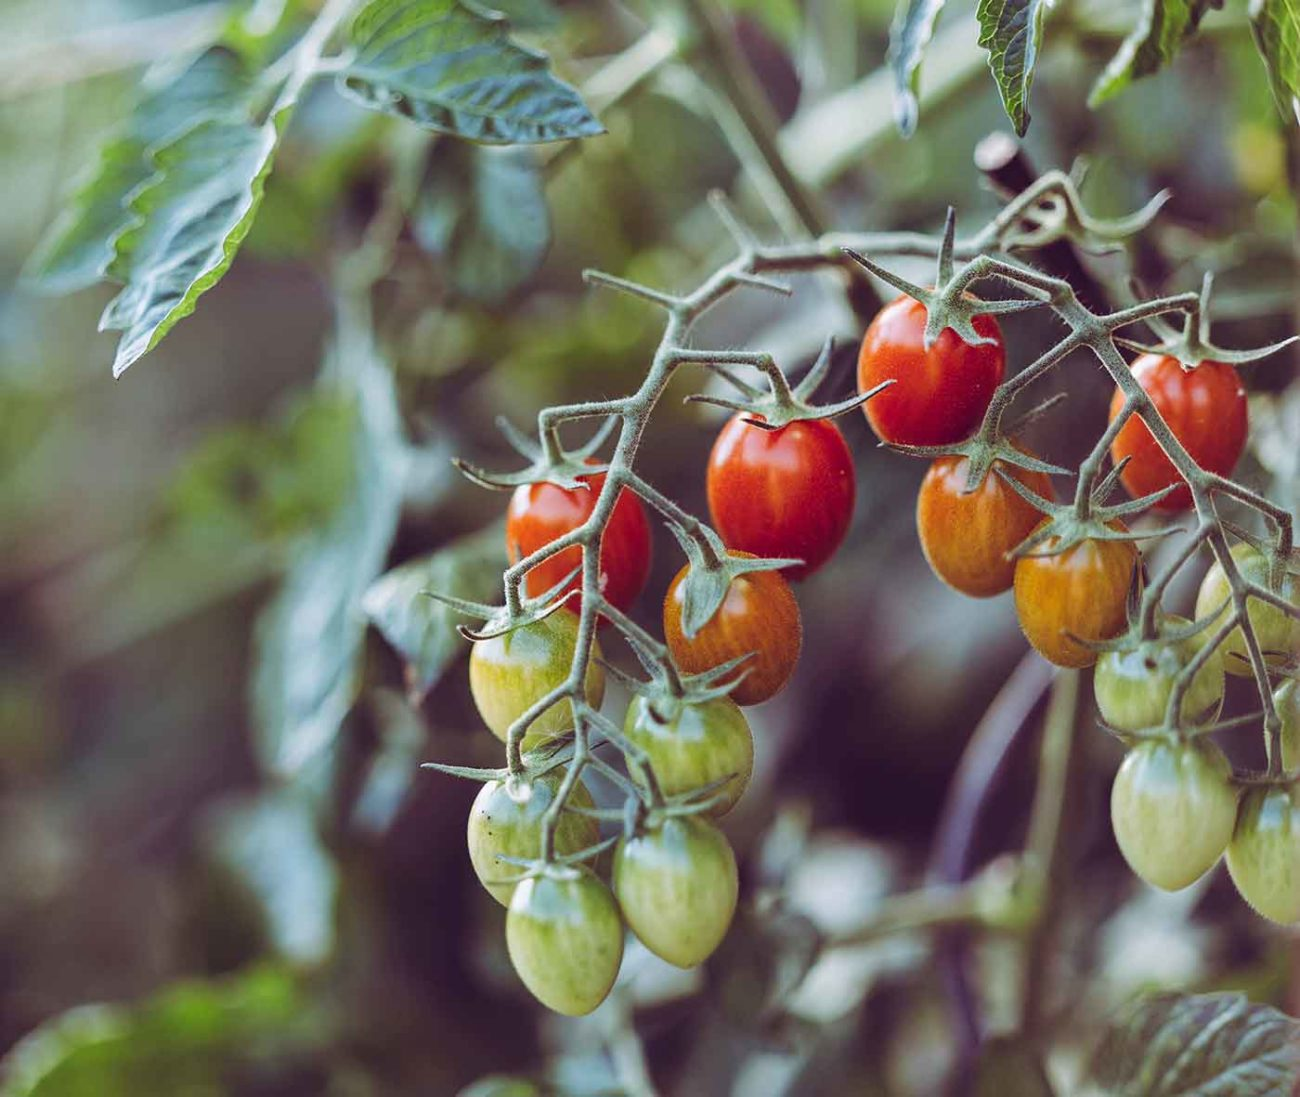 grape tomatoes on the vine